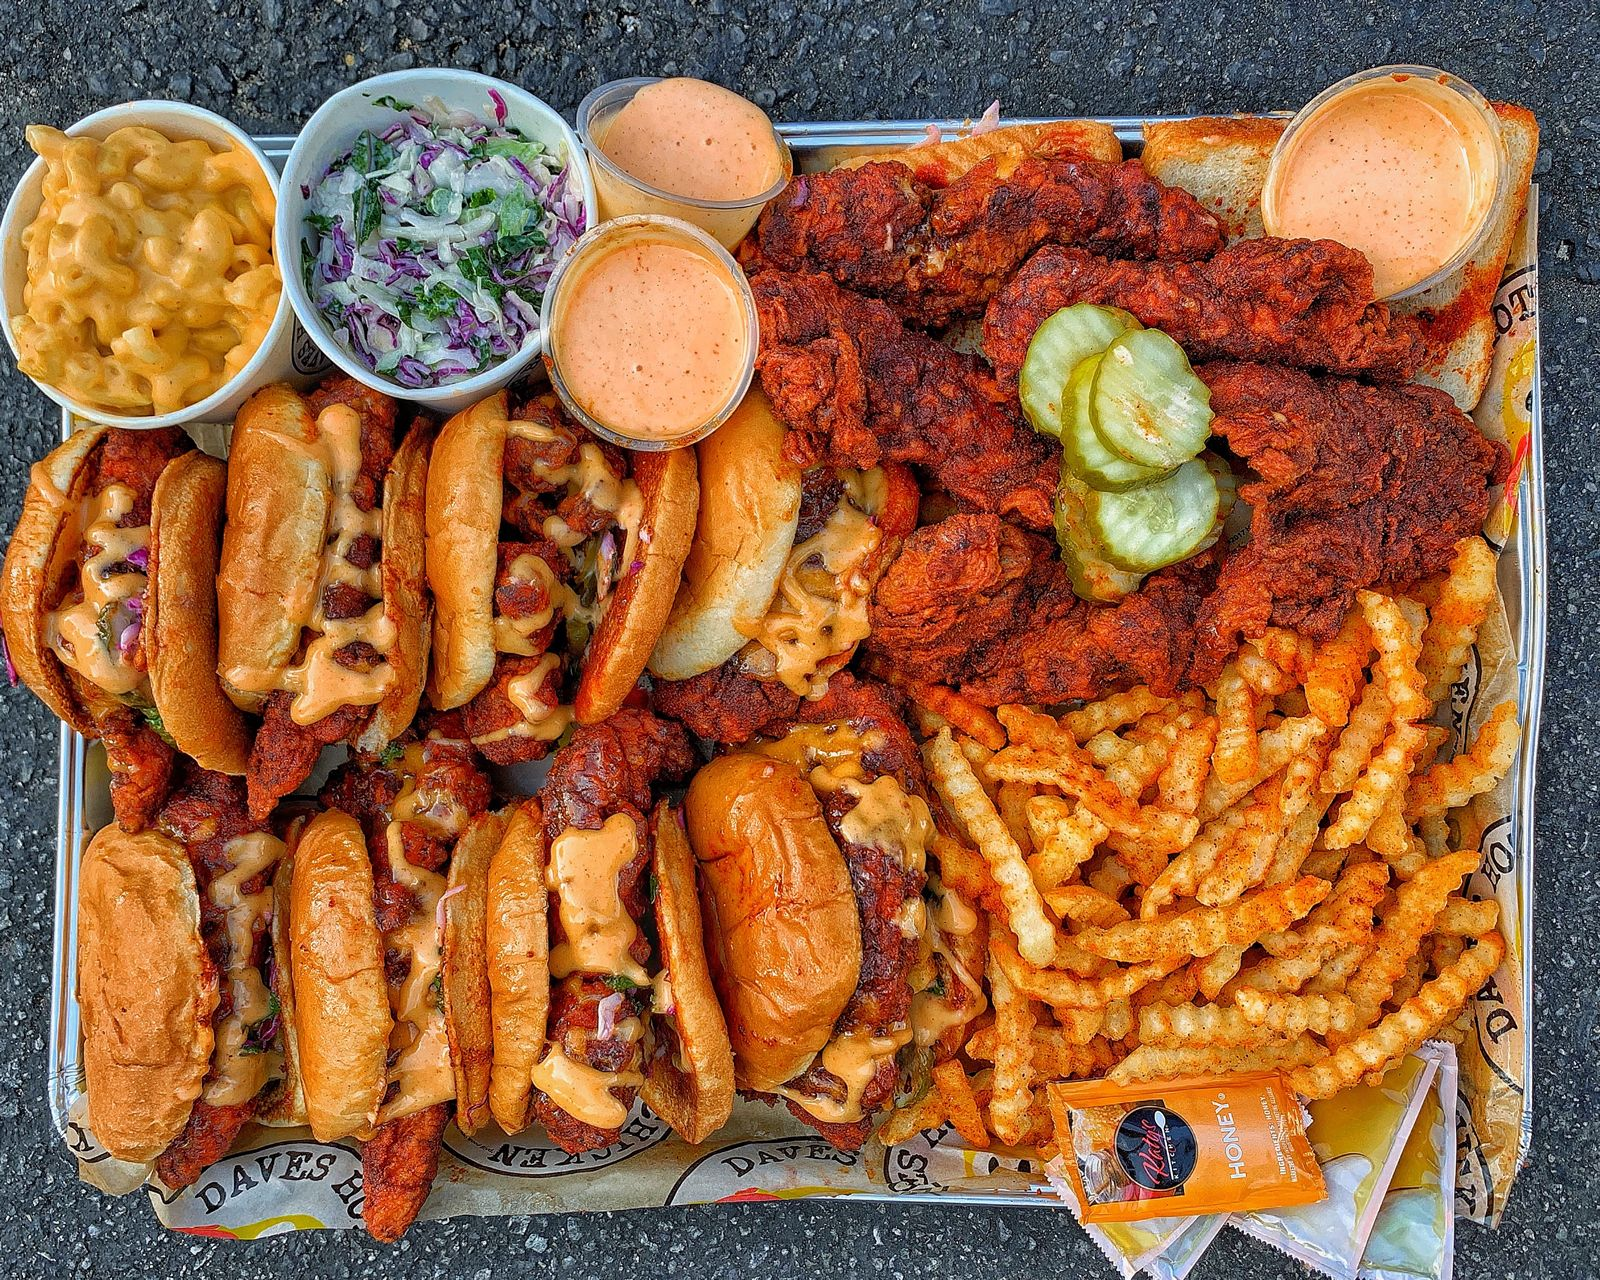 Dave's Hot Chicken Heats up Orange County with Opening of Fountain Valley Restaurant